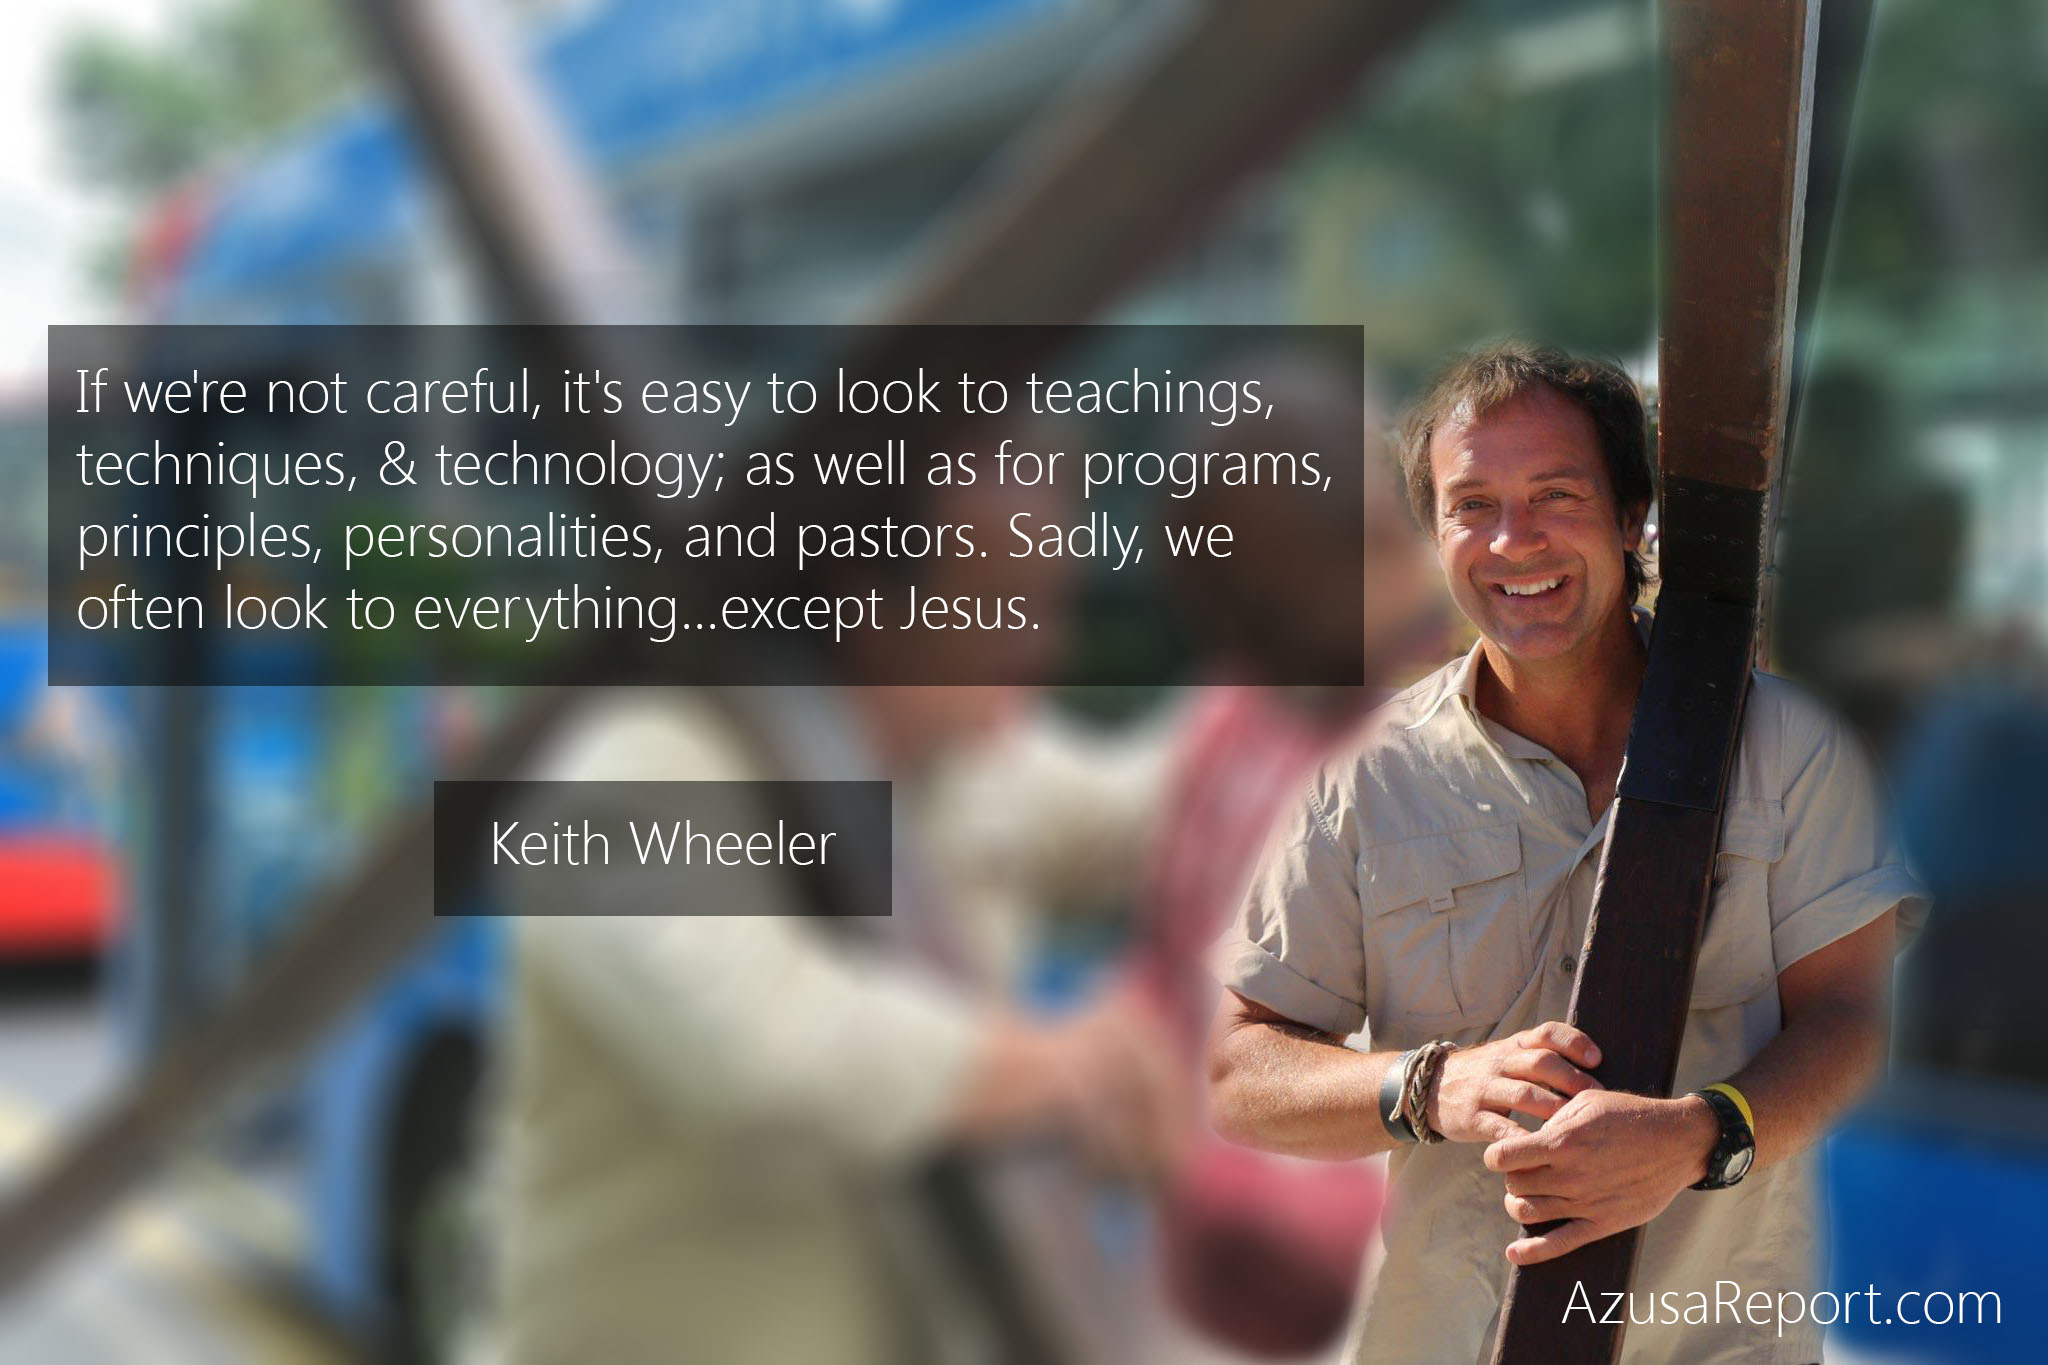 Keith Wheeler on the Cross